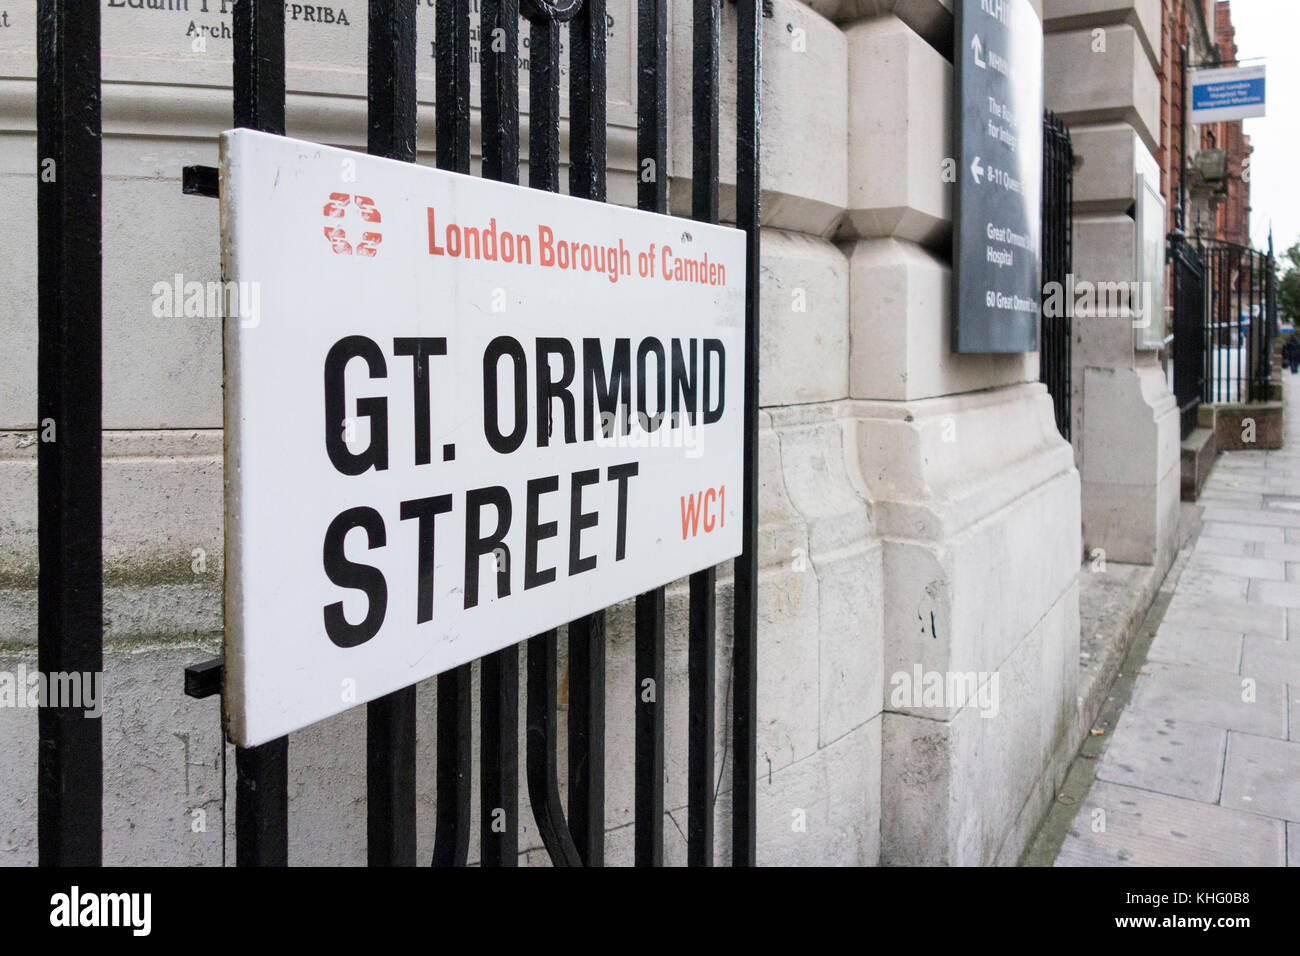 Great Ormond Street, London Borough of Camden, WC1 street sign outside the world famous Great Ormond Street Hospital, - Stock Image